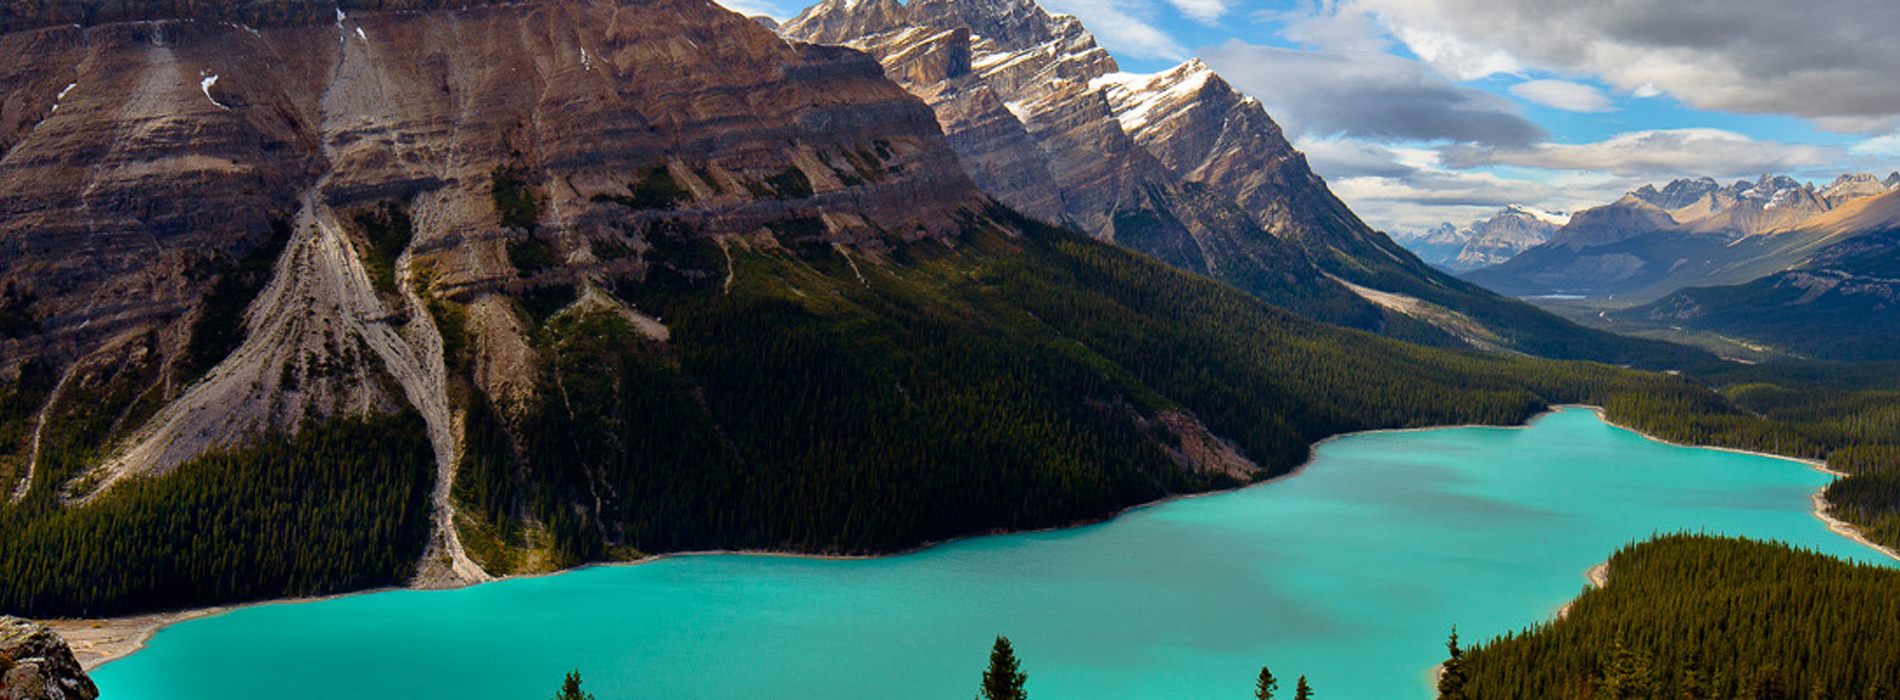 canadian rockies vacations guide - banff national park | canadian